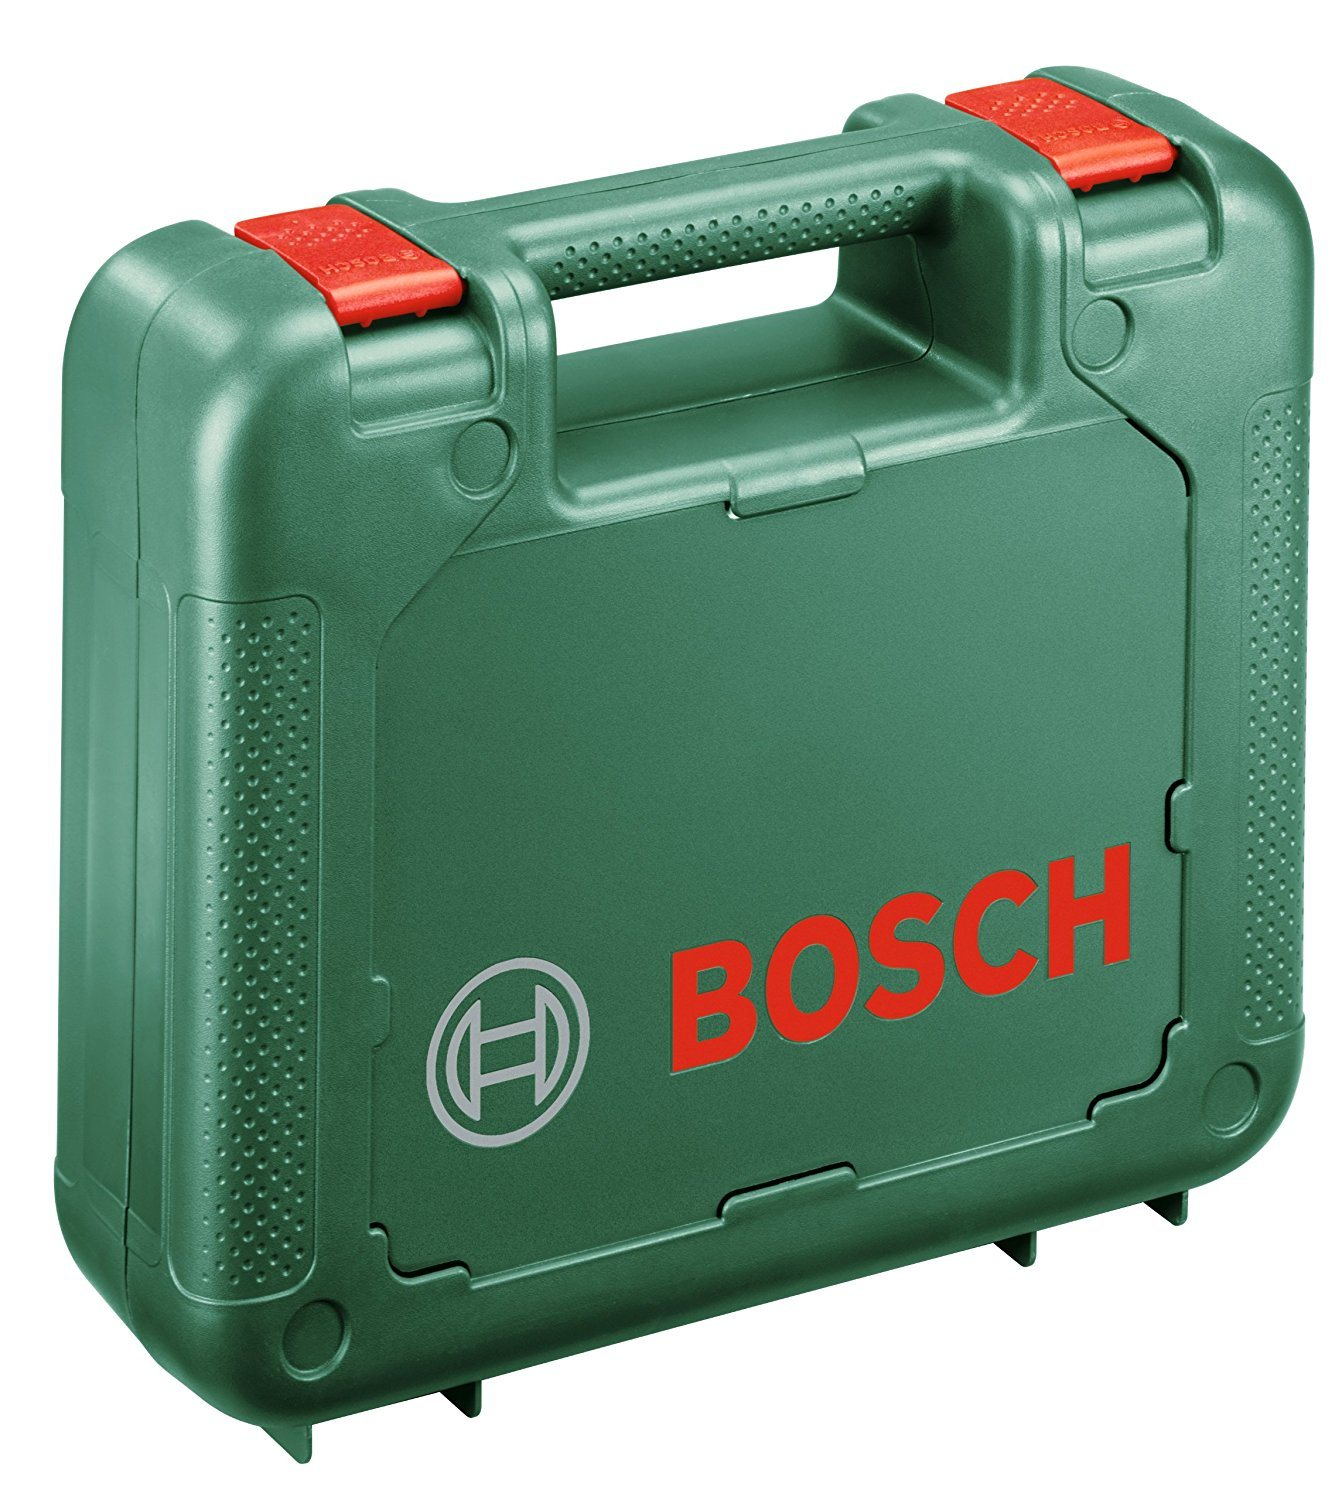 Bosch PST 700 E jigsaw carry case